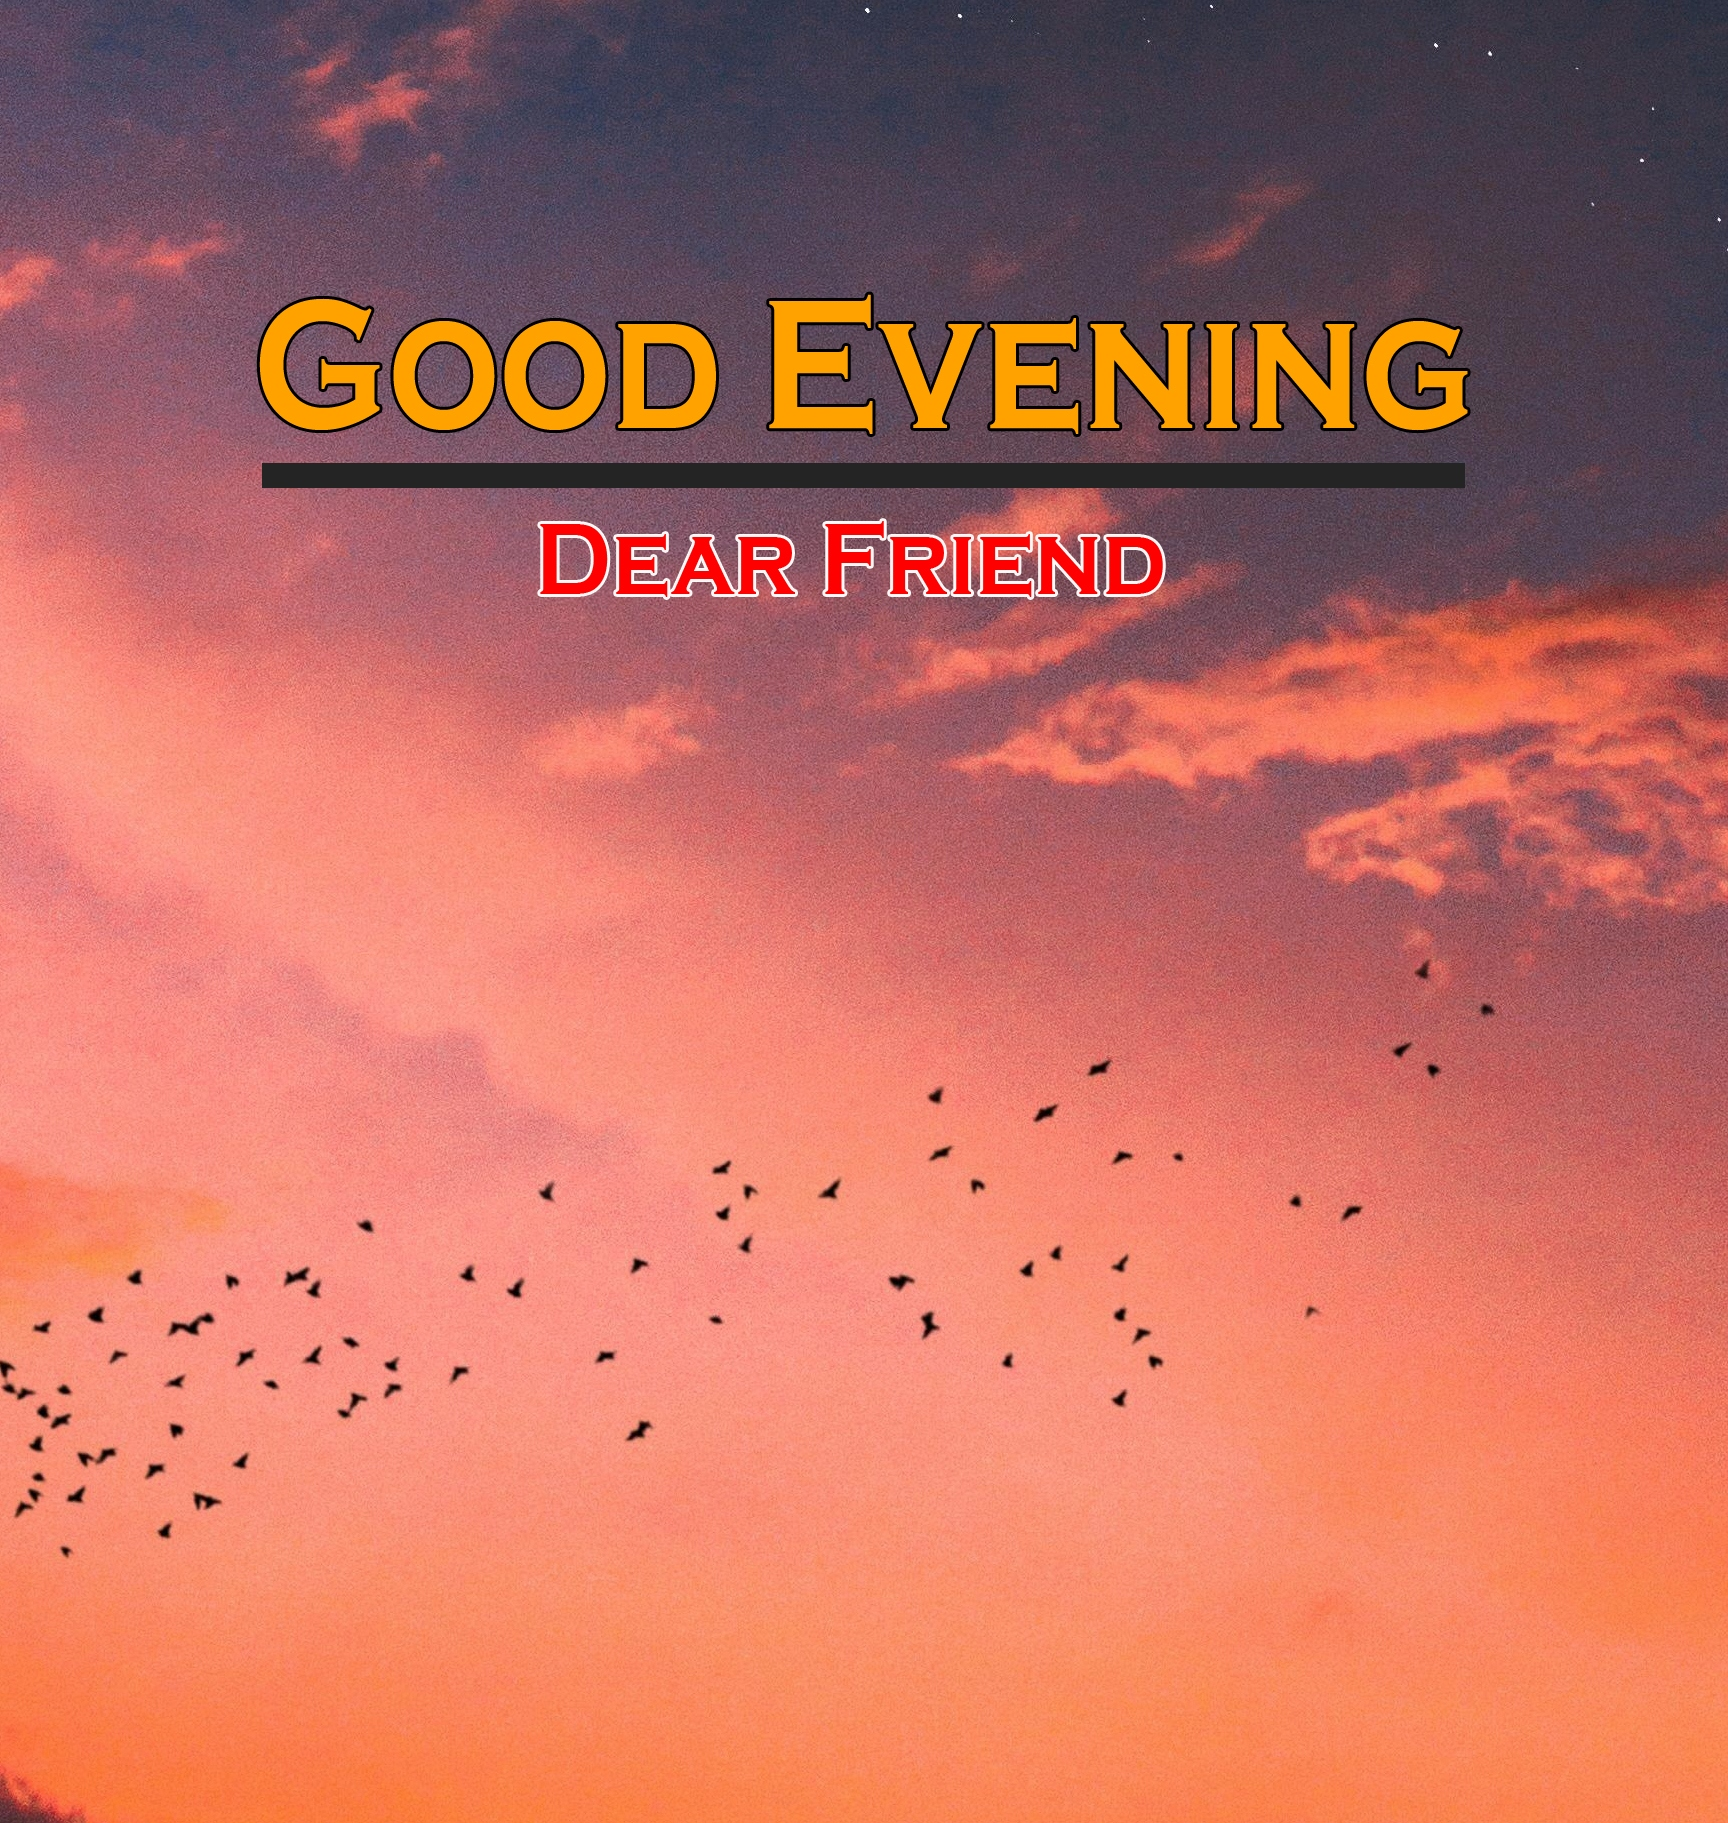 good evening photo download 12